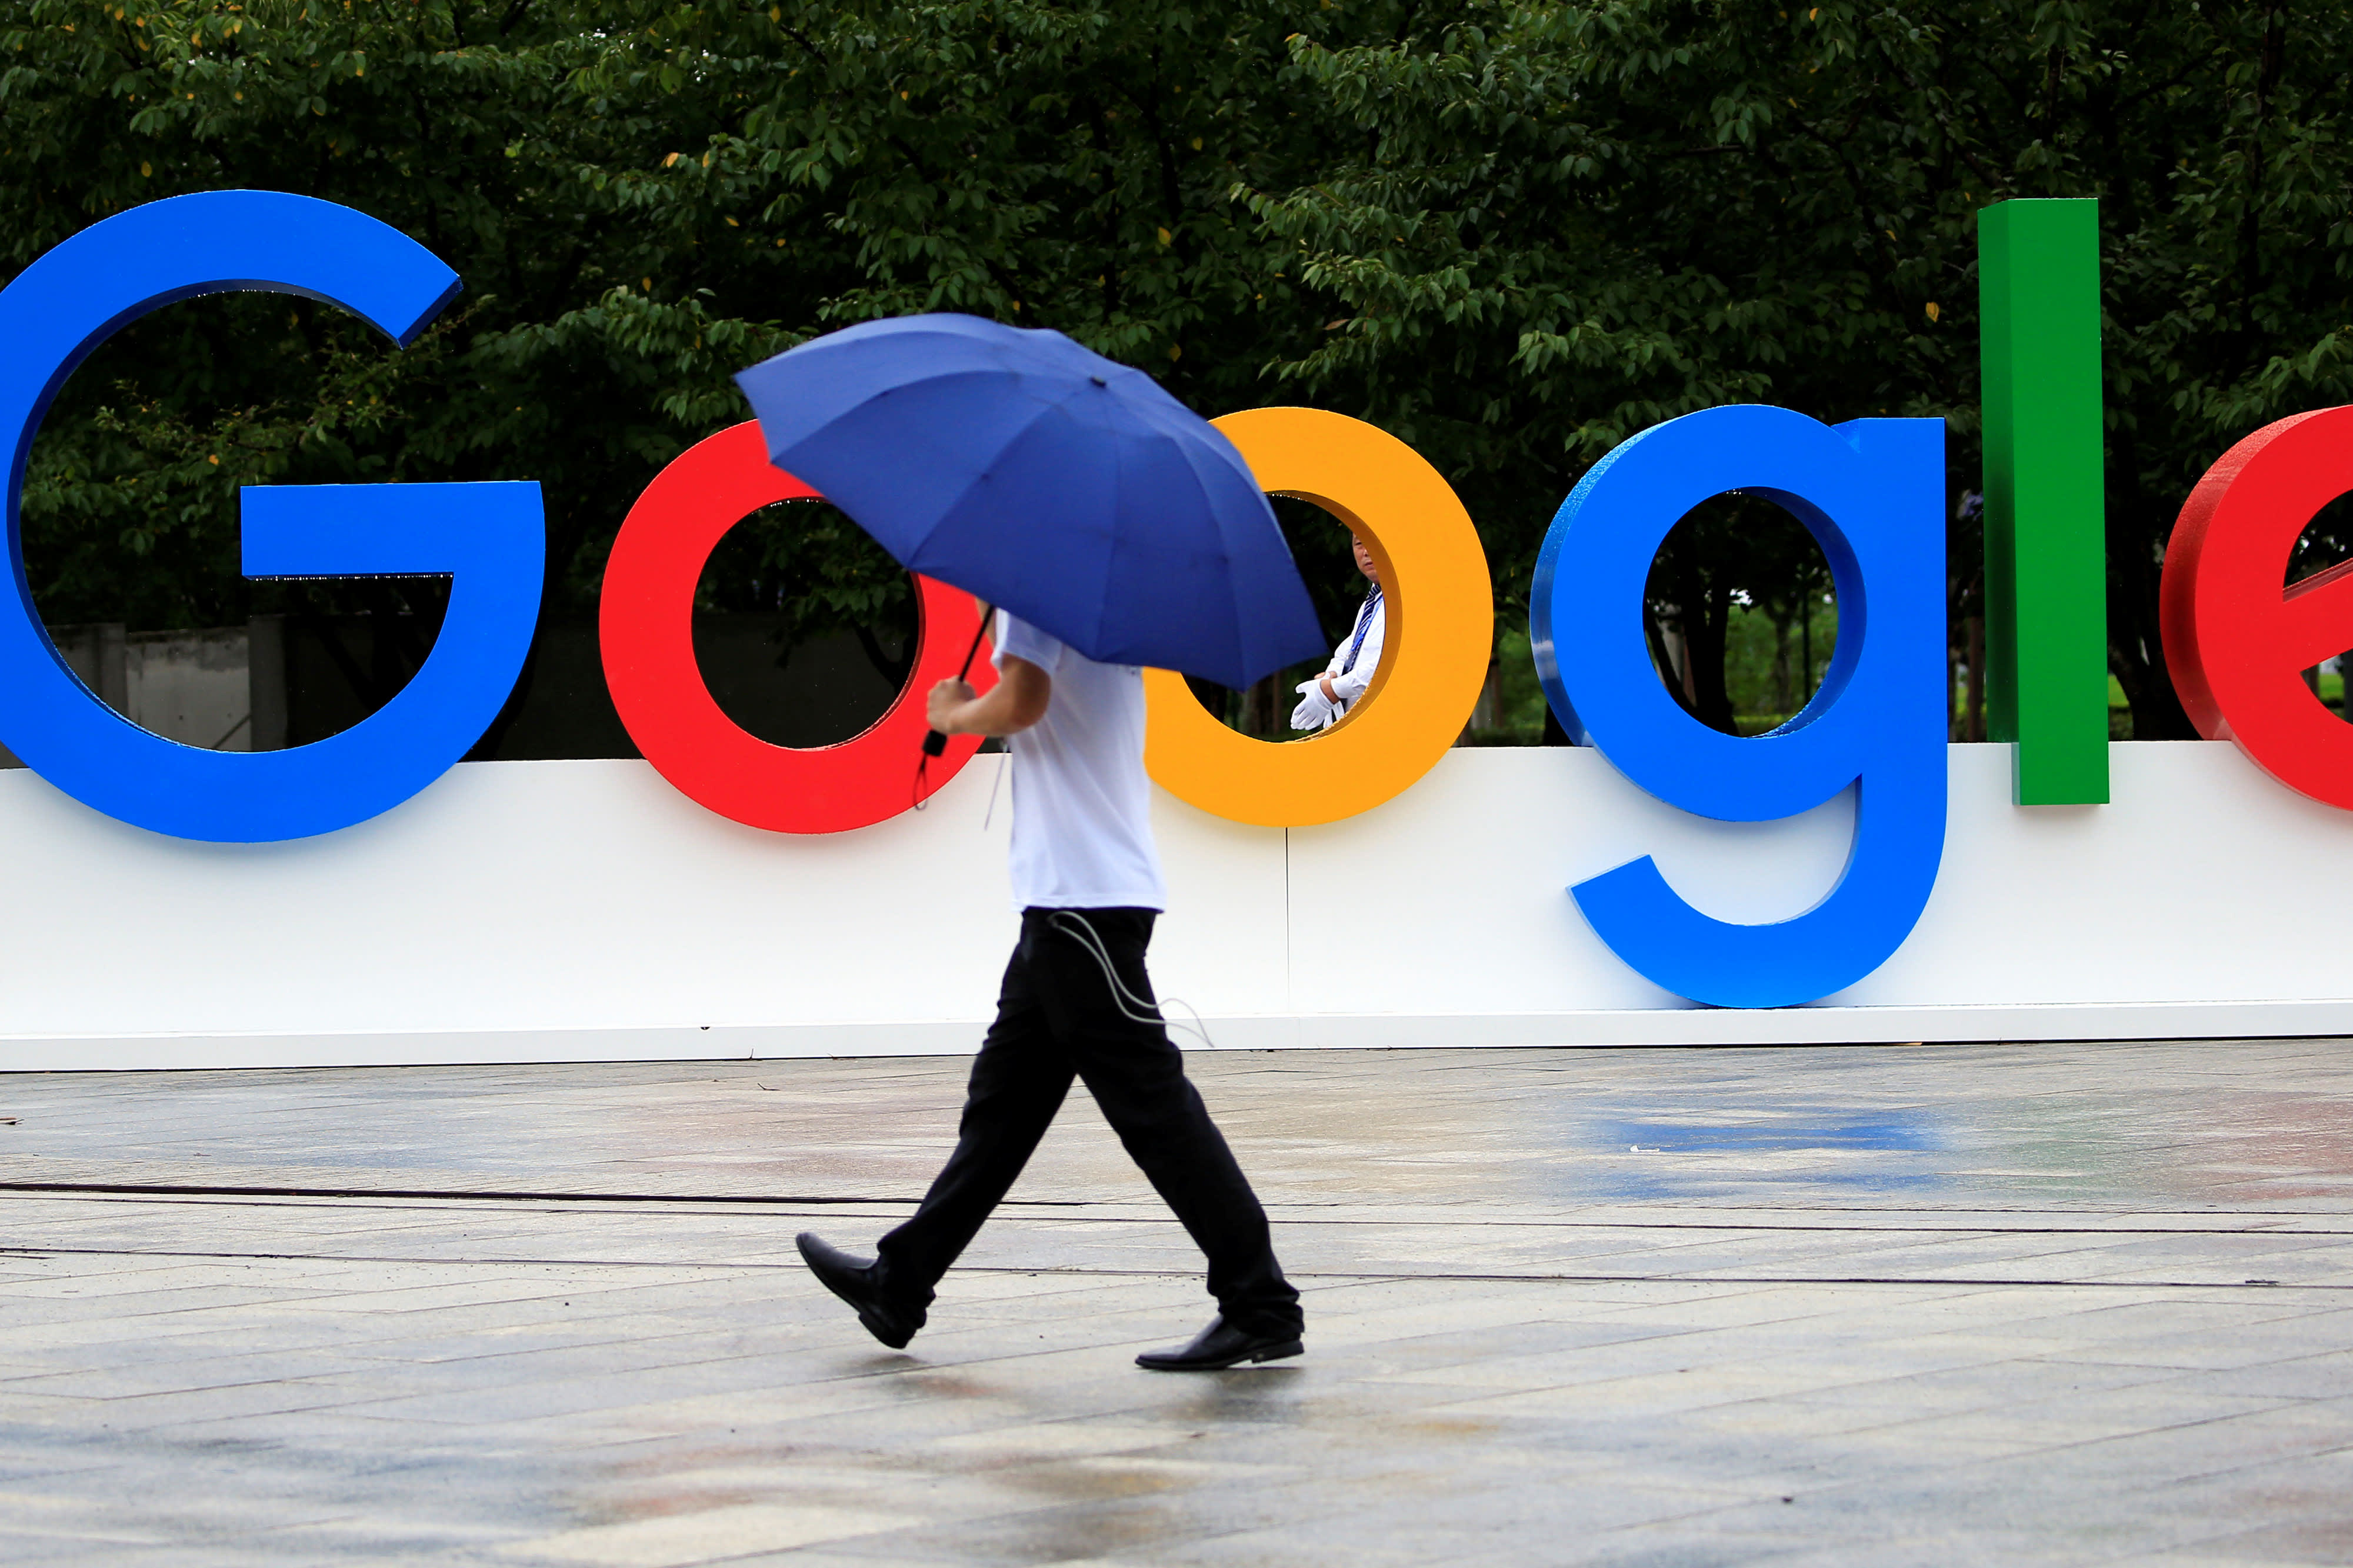 Cramer: Be wary of stocks that rally into earnings reports, like Google-parent Alphabet did